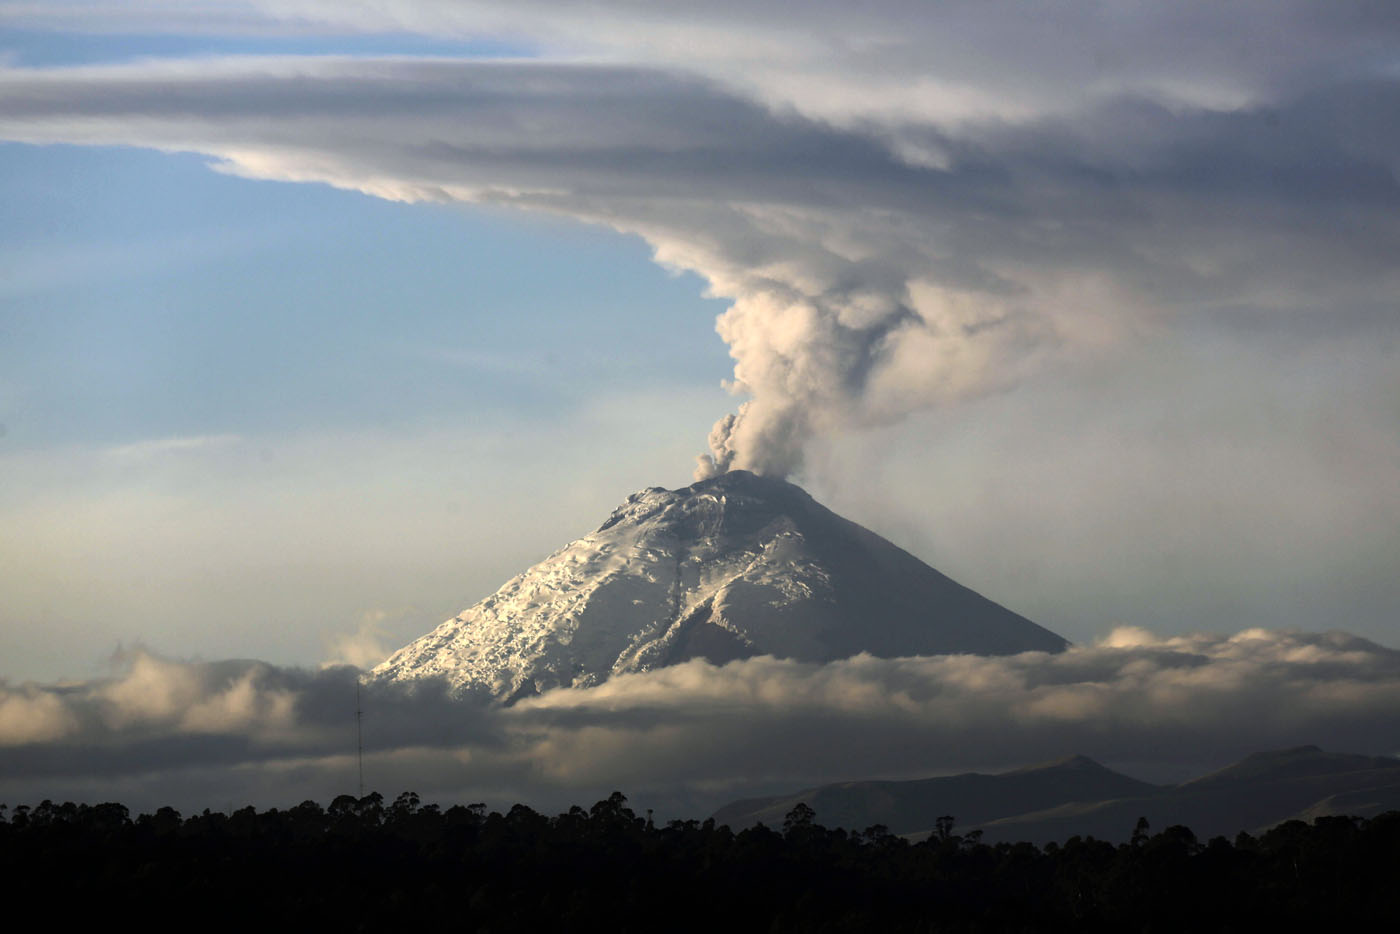 Volcano in Ecuador, mini electric motorcycles, northern lights over England | Oct. 8